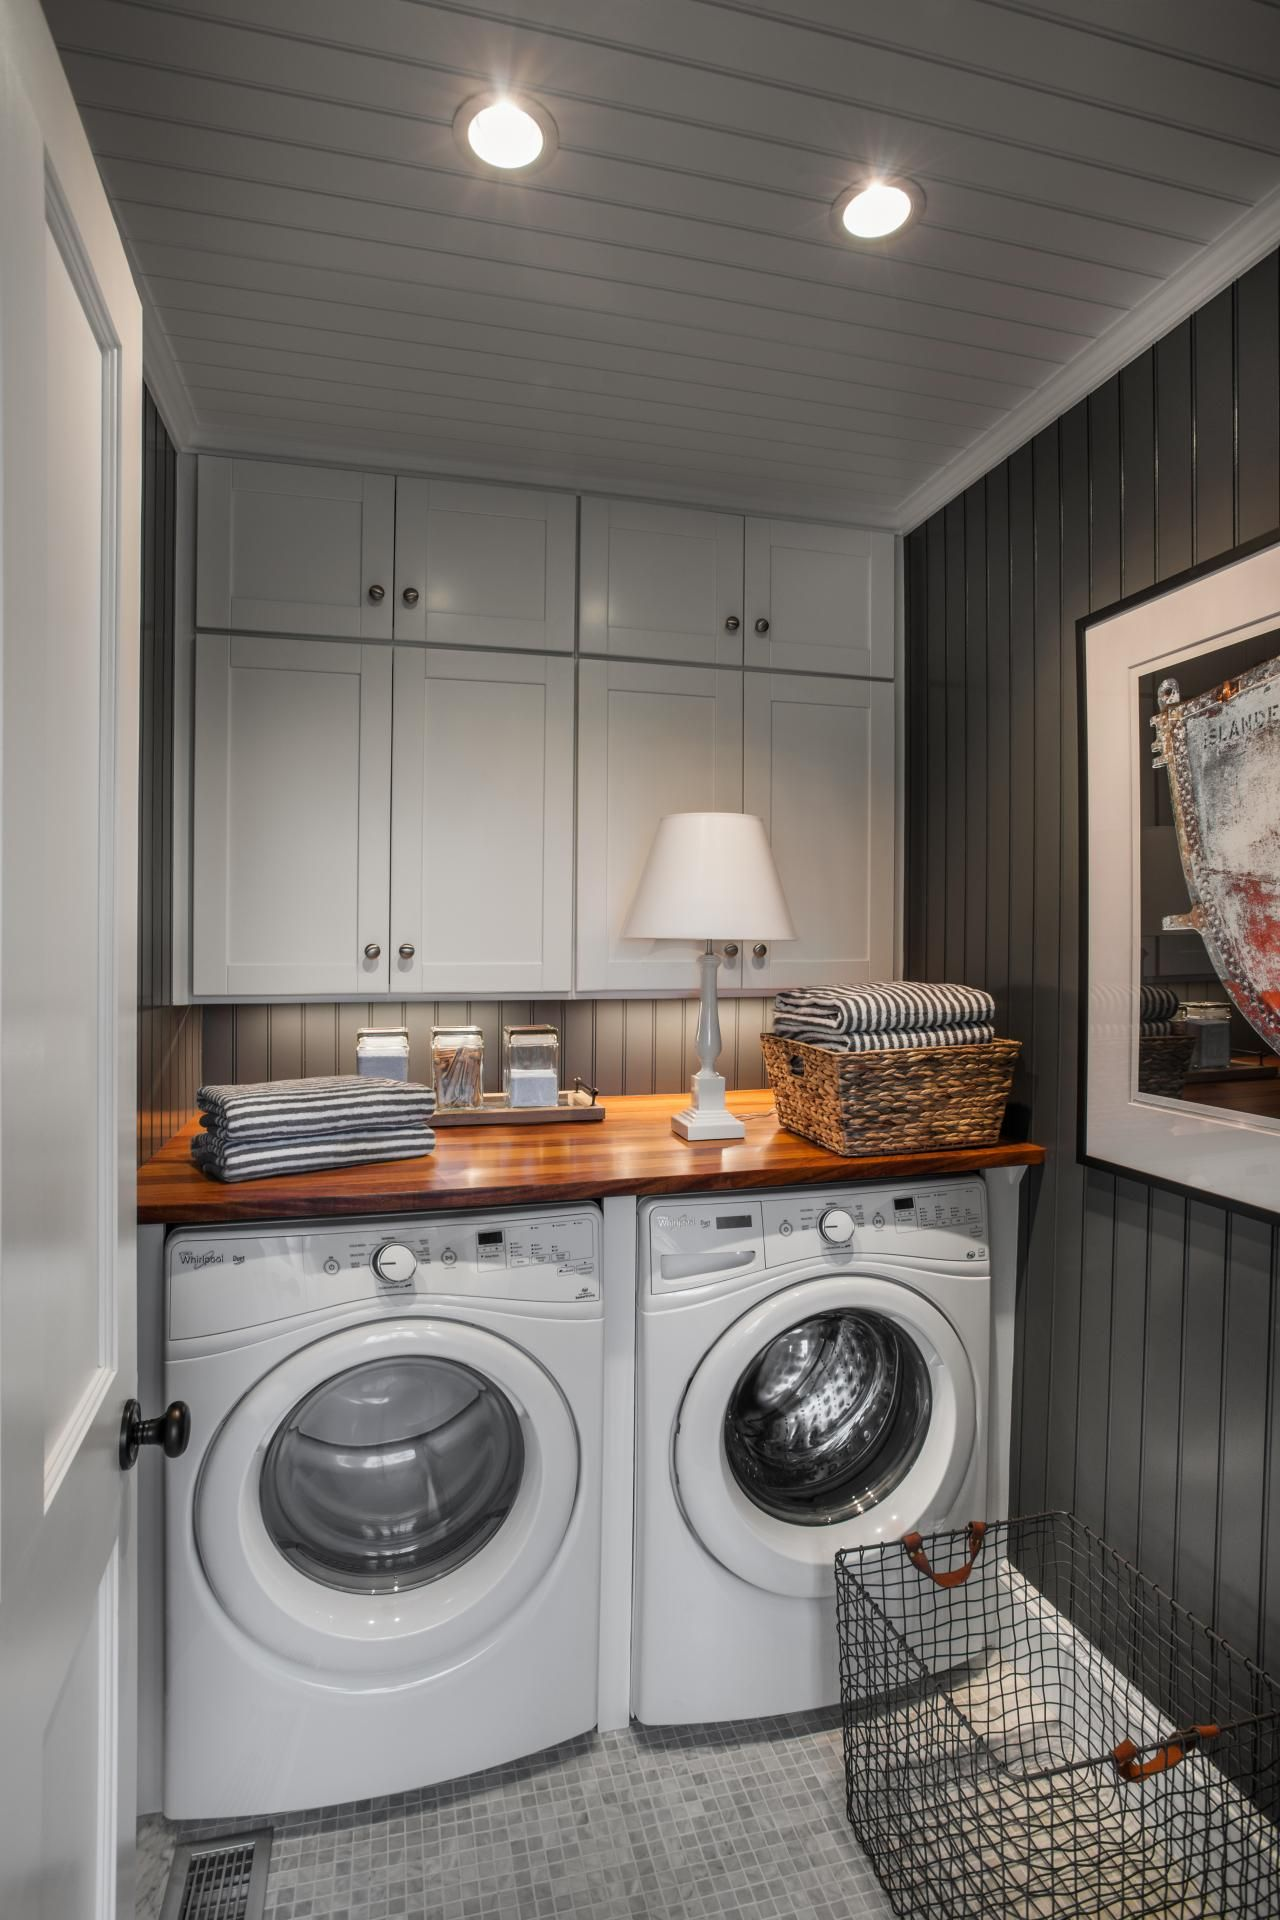 The spacious laundry room boasts a side by side front loading washer and